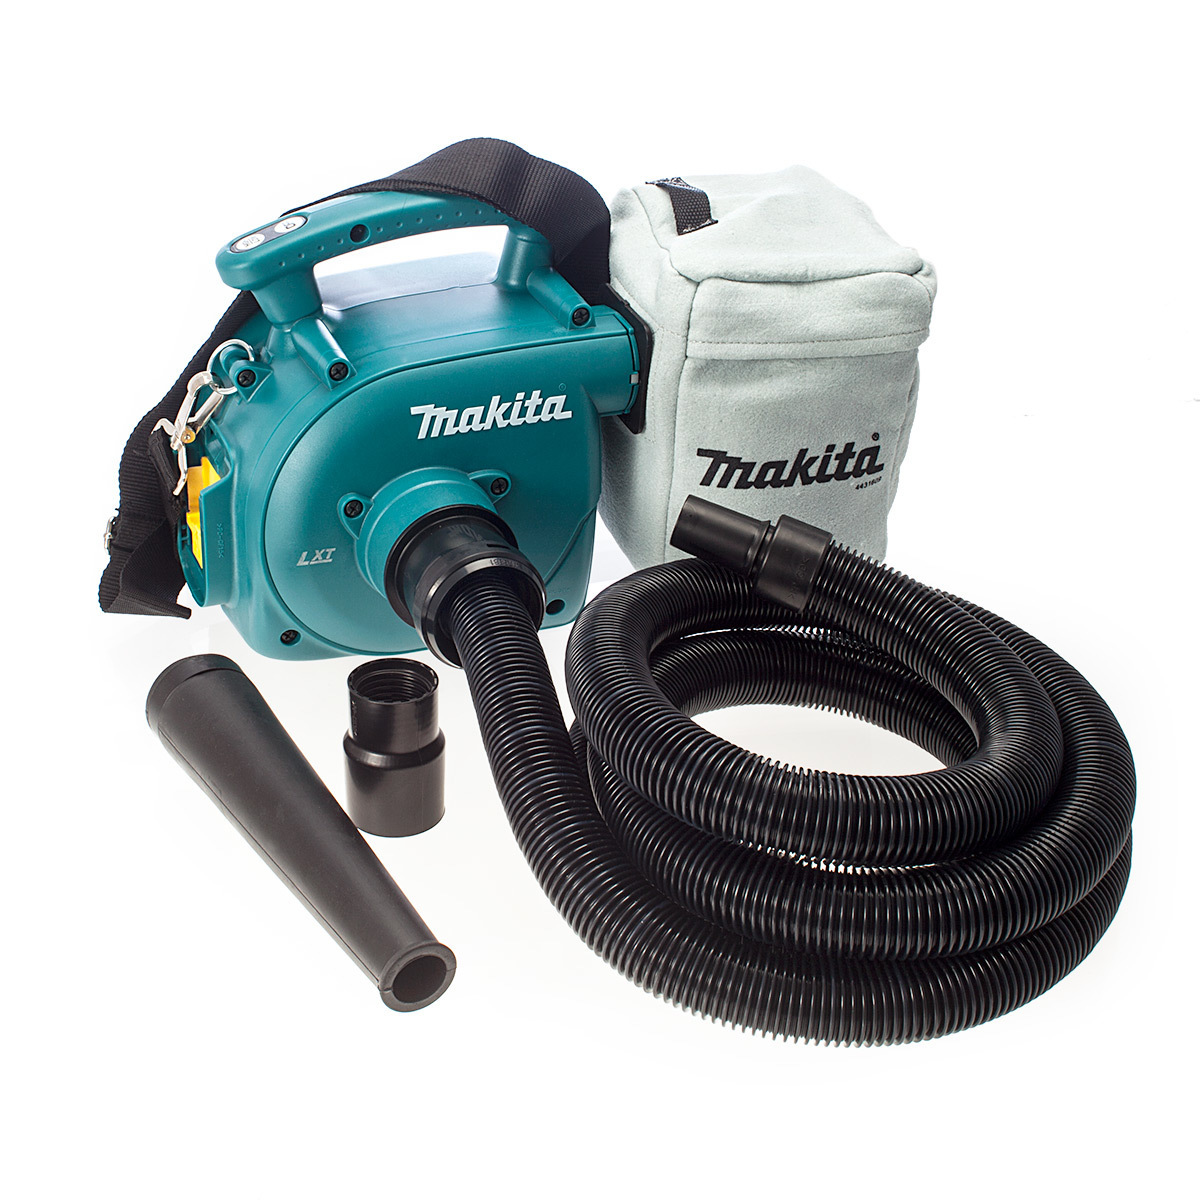 makita Makita DVC350Z 18V Cordless li-ion Vacuum Cleaner / Dust Extractor / Blow